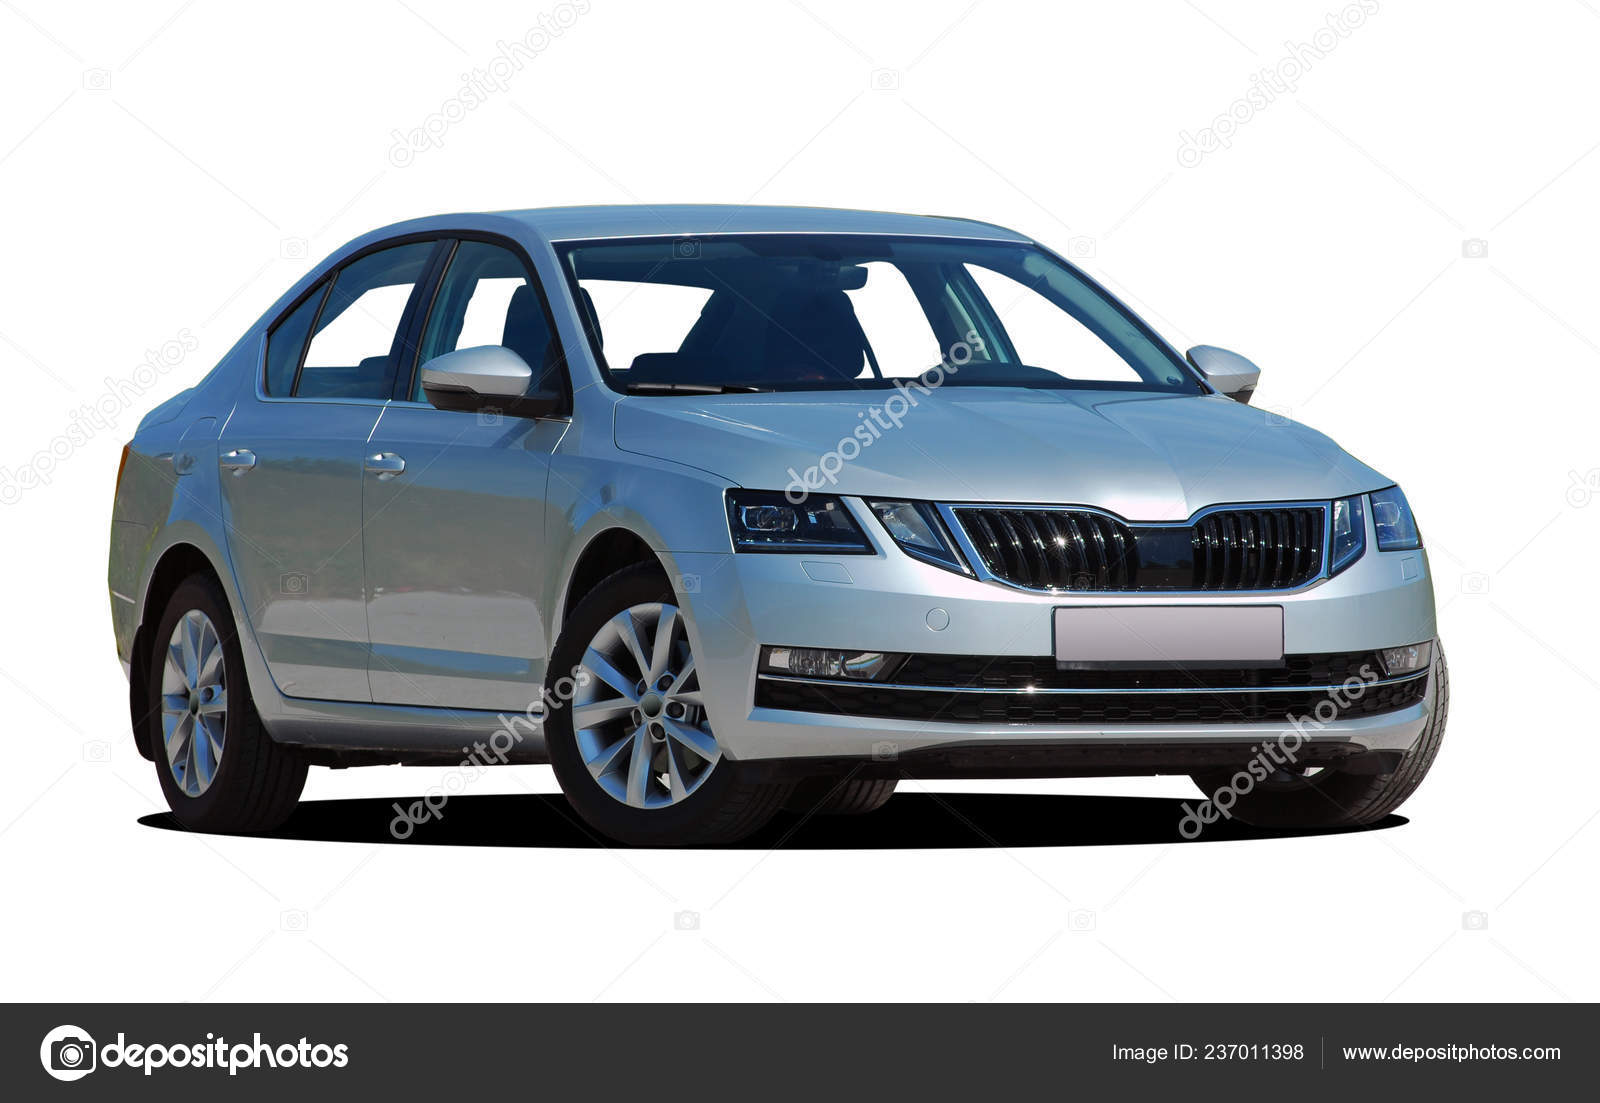 Car White Background Stock Editorial Photo C Aselsa 237011398